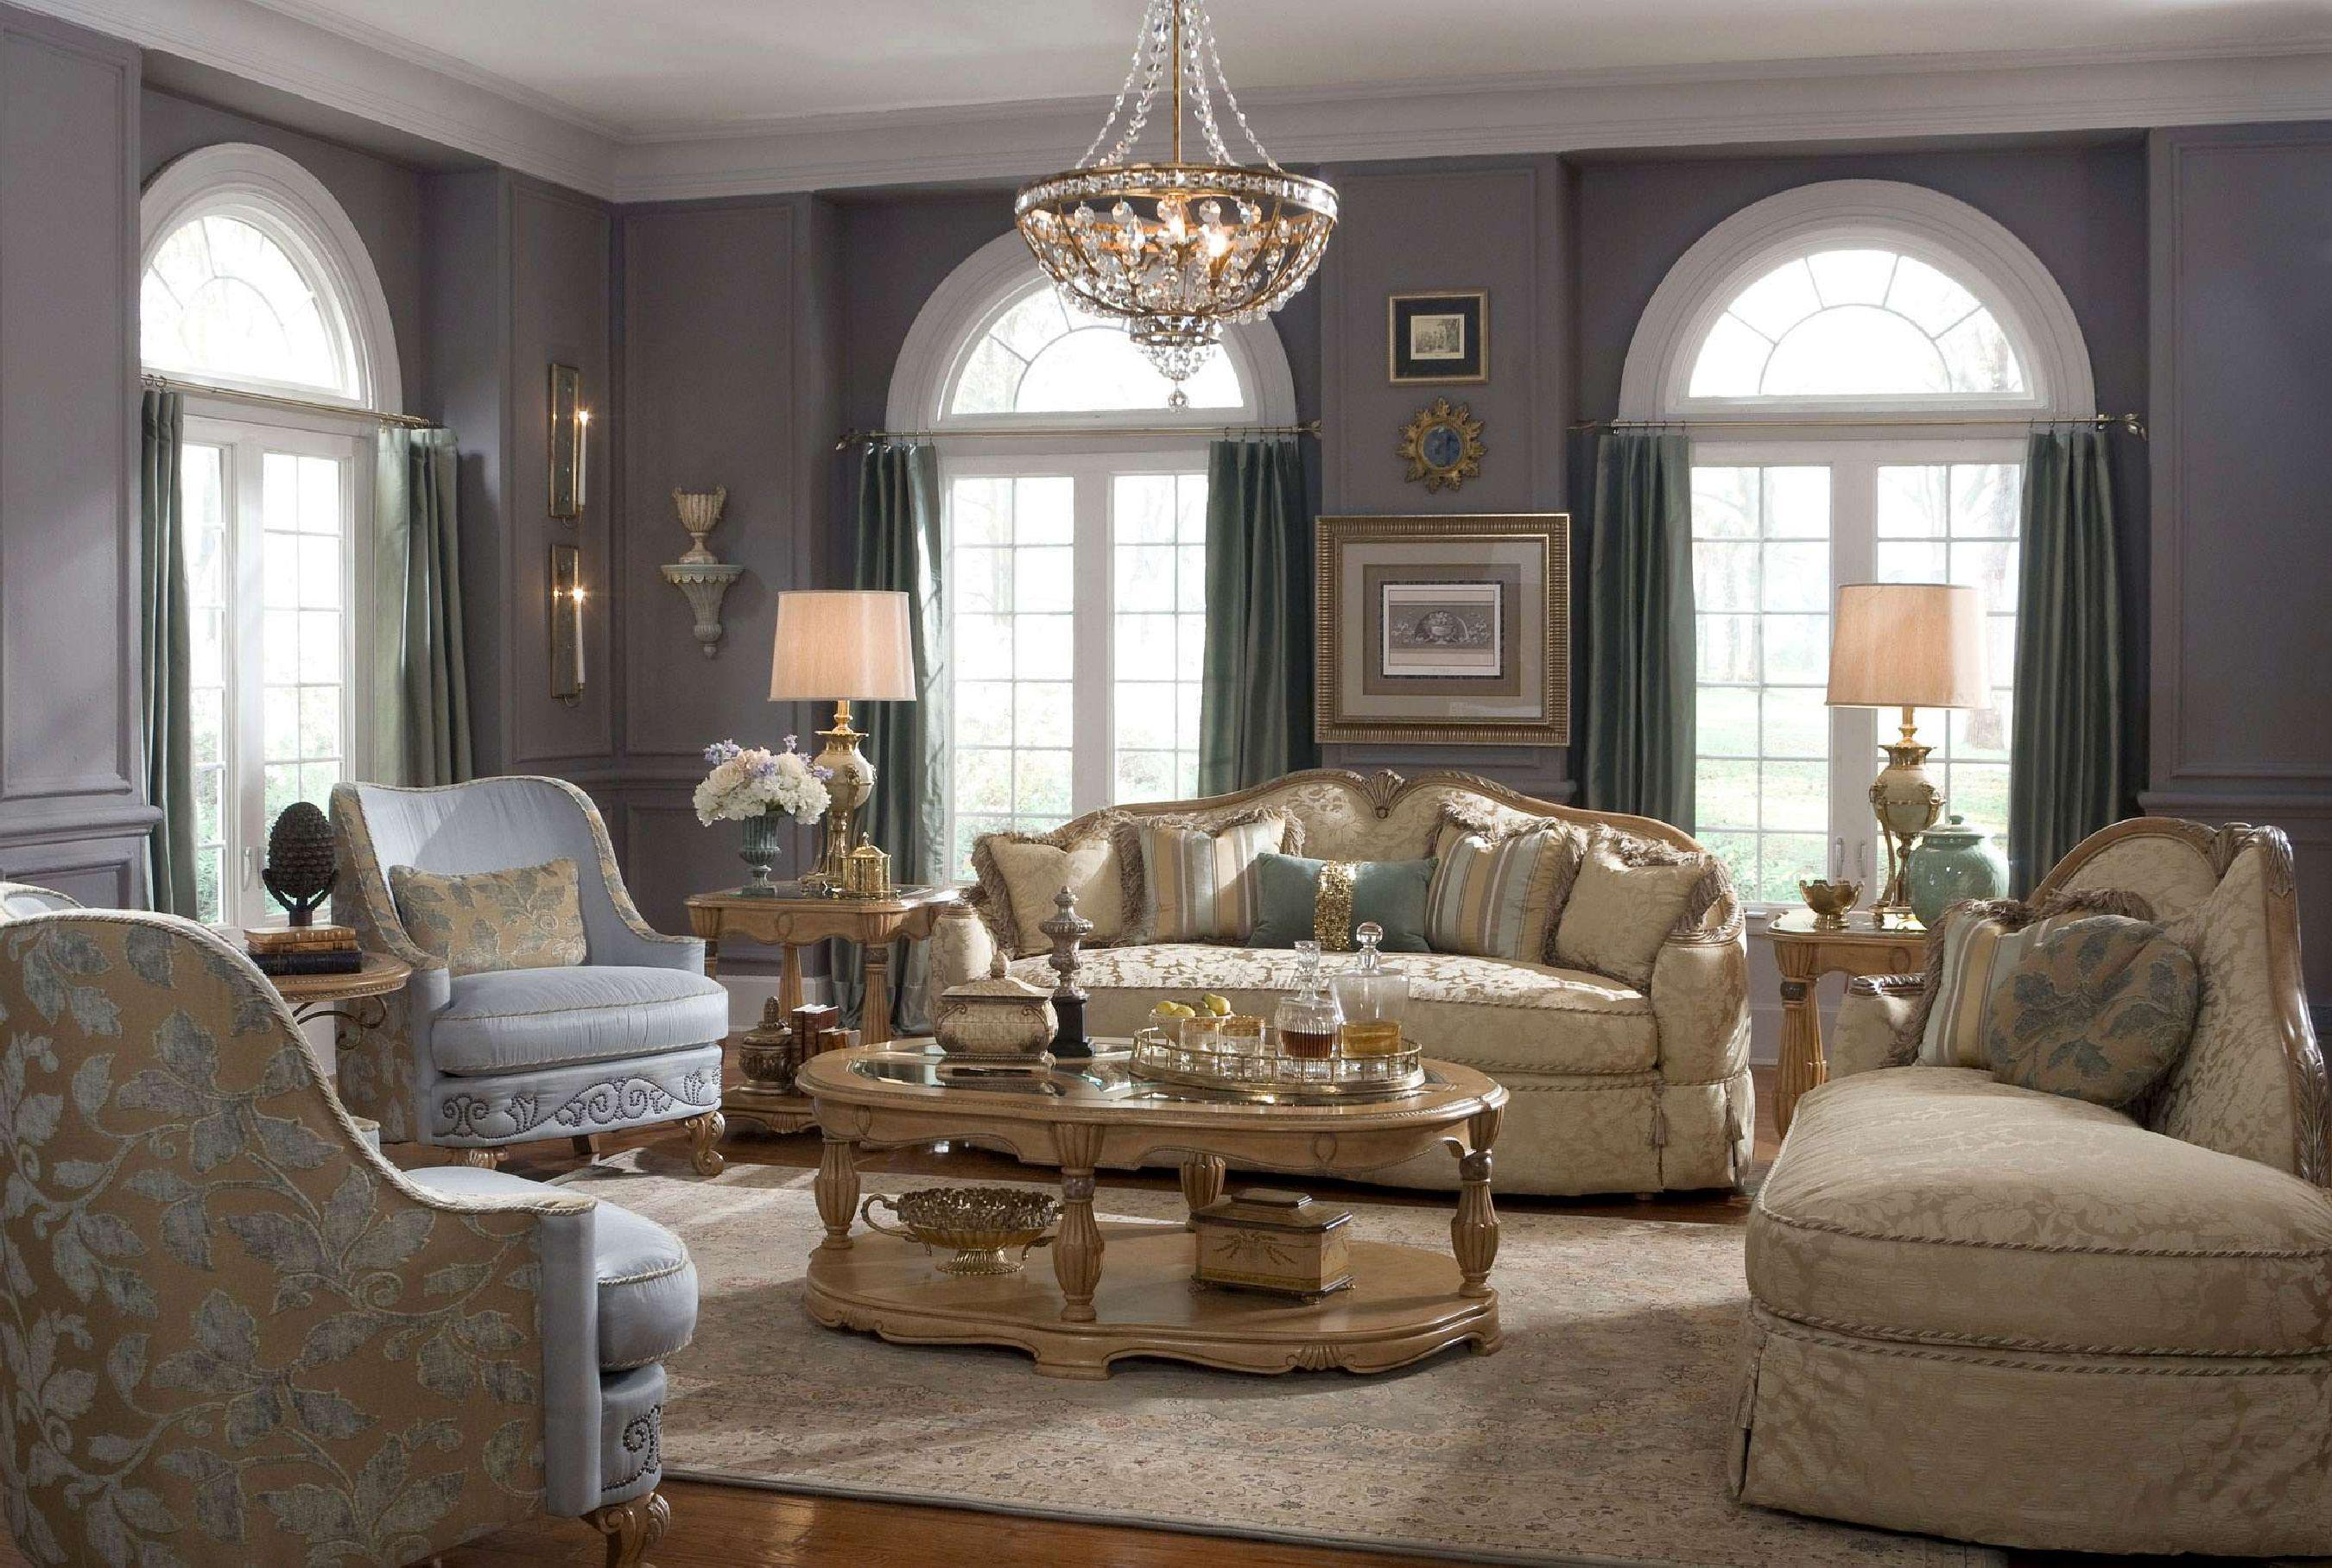 Benefits Of Decorating Your Home With Antiques on Traditional Formal Living Room Sets